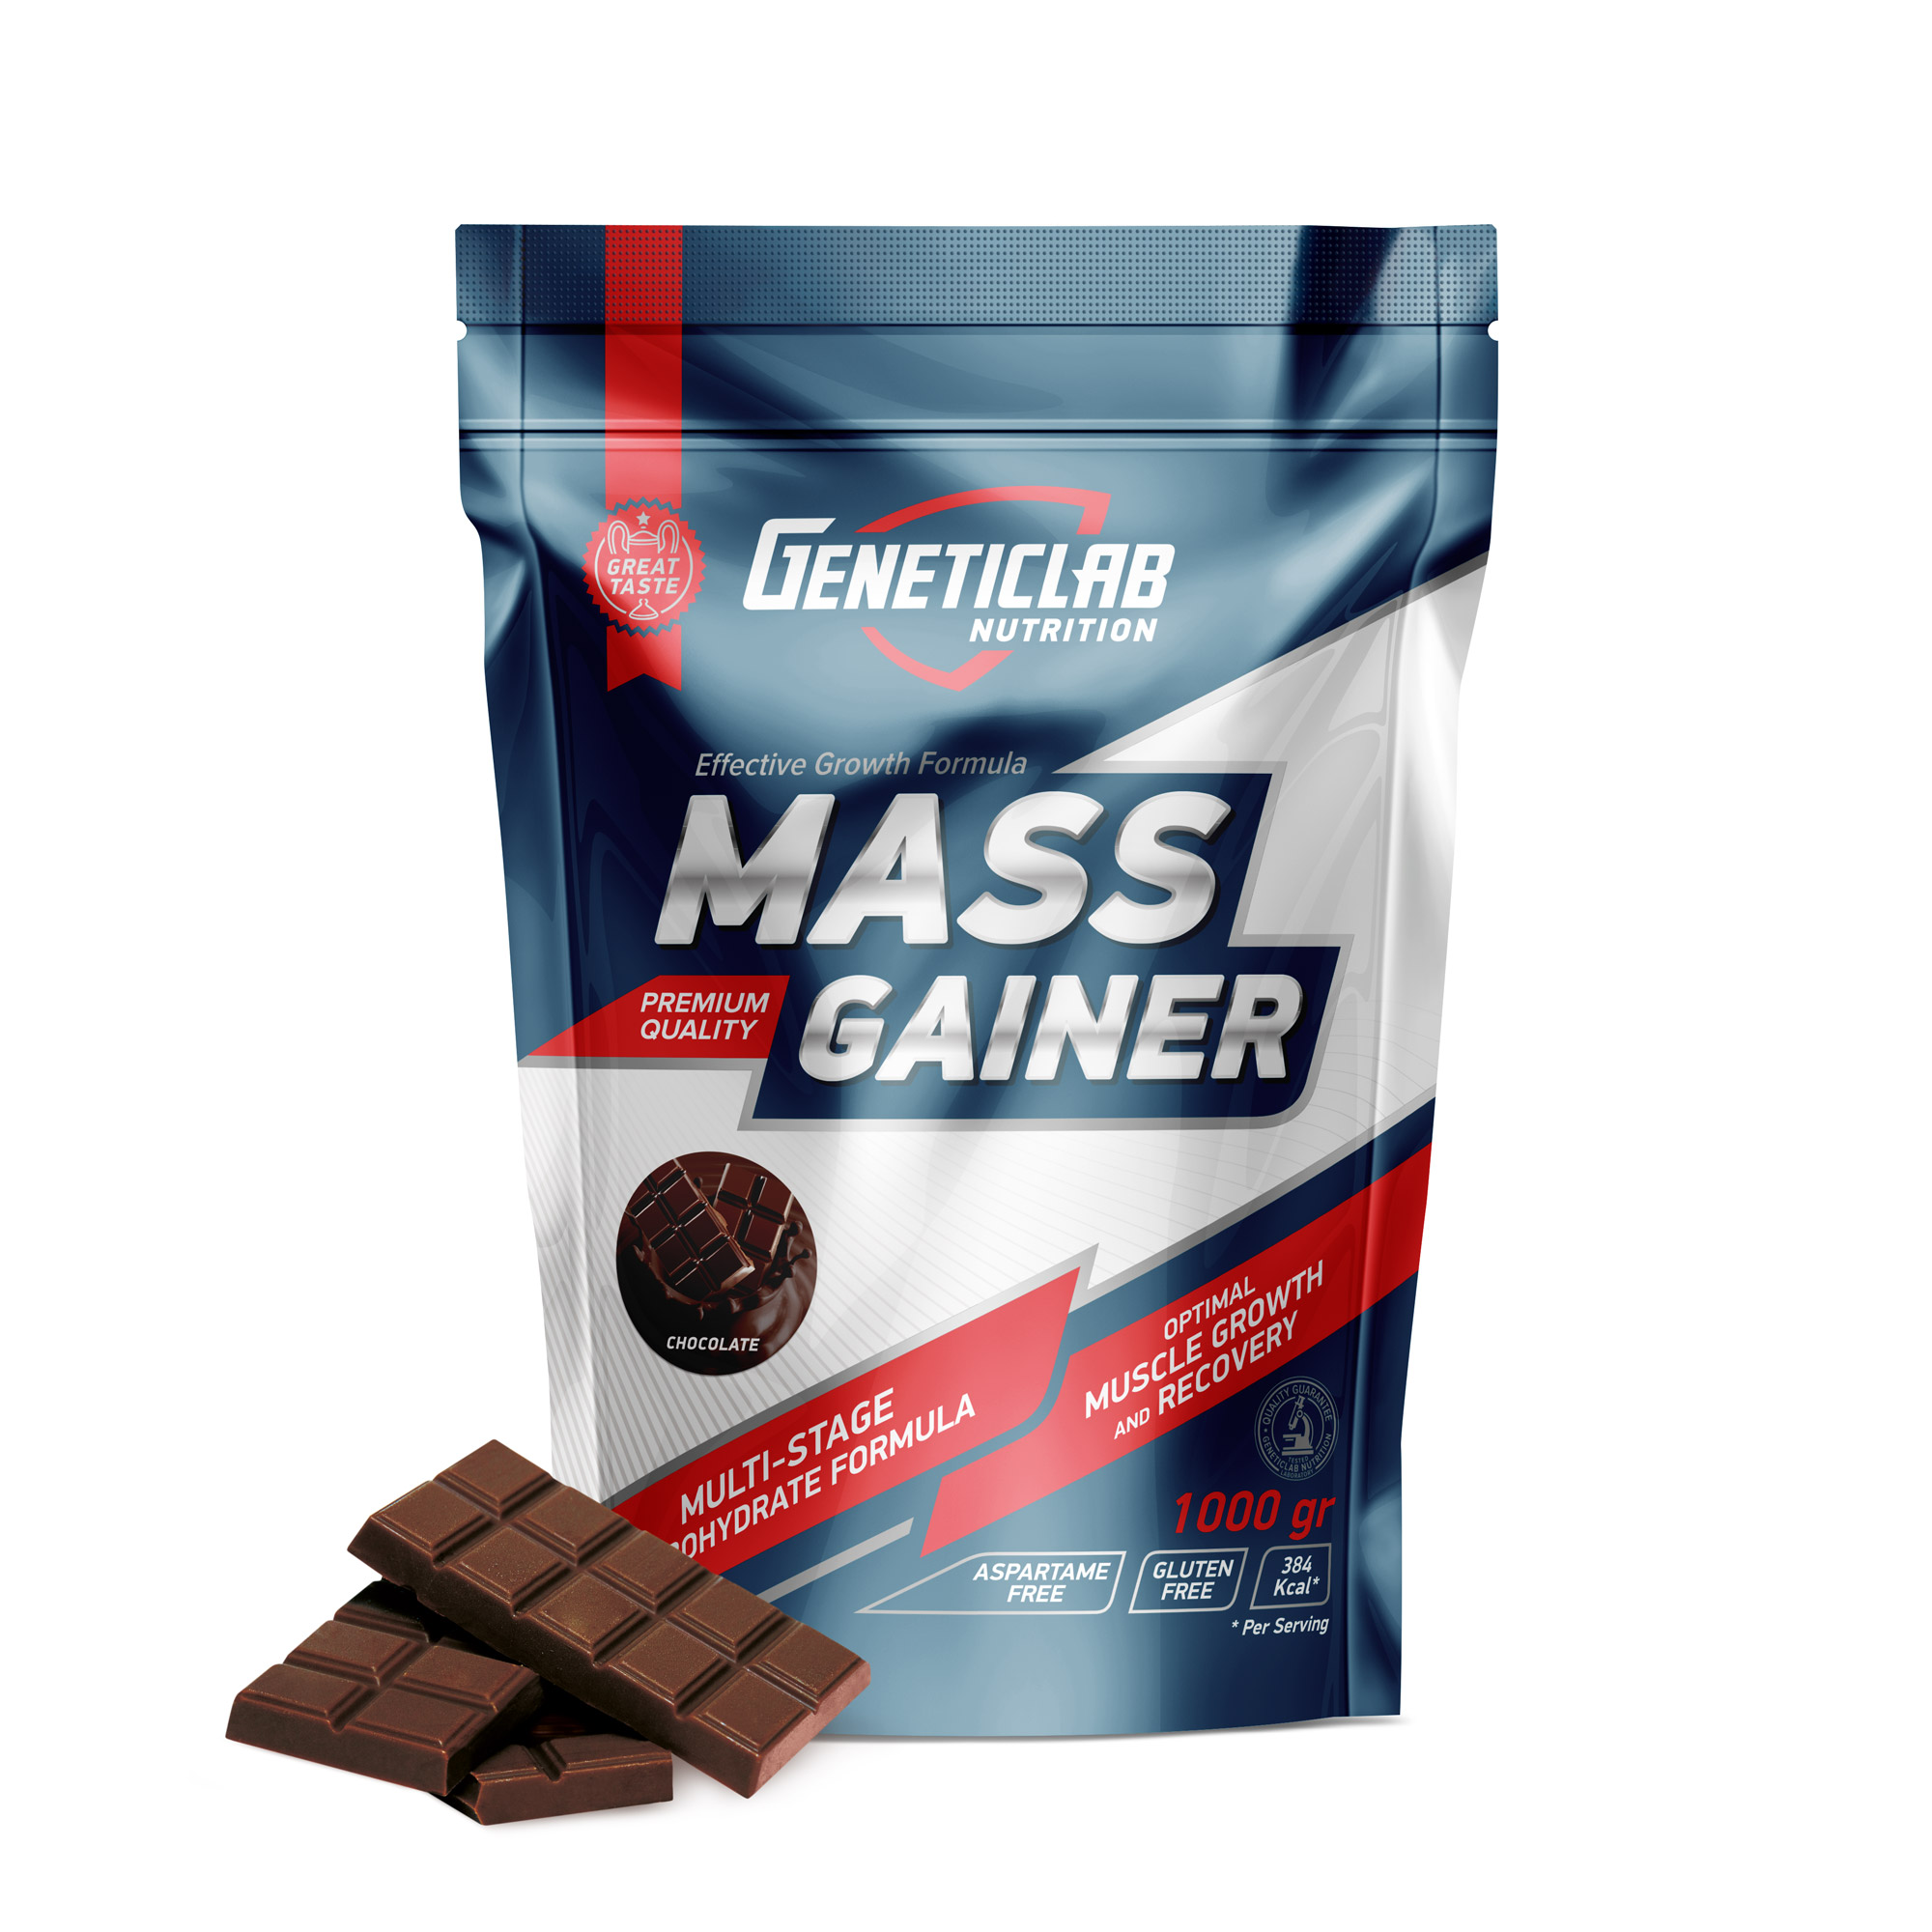 Genetic Lab Mass Gainer